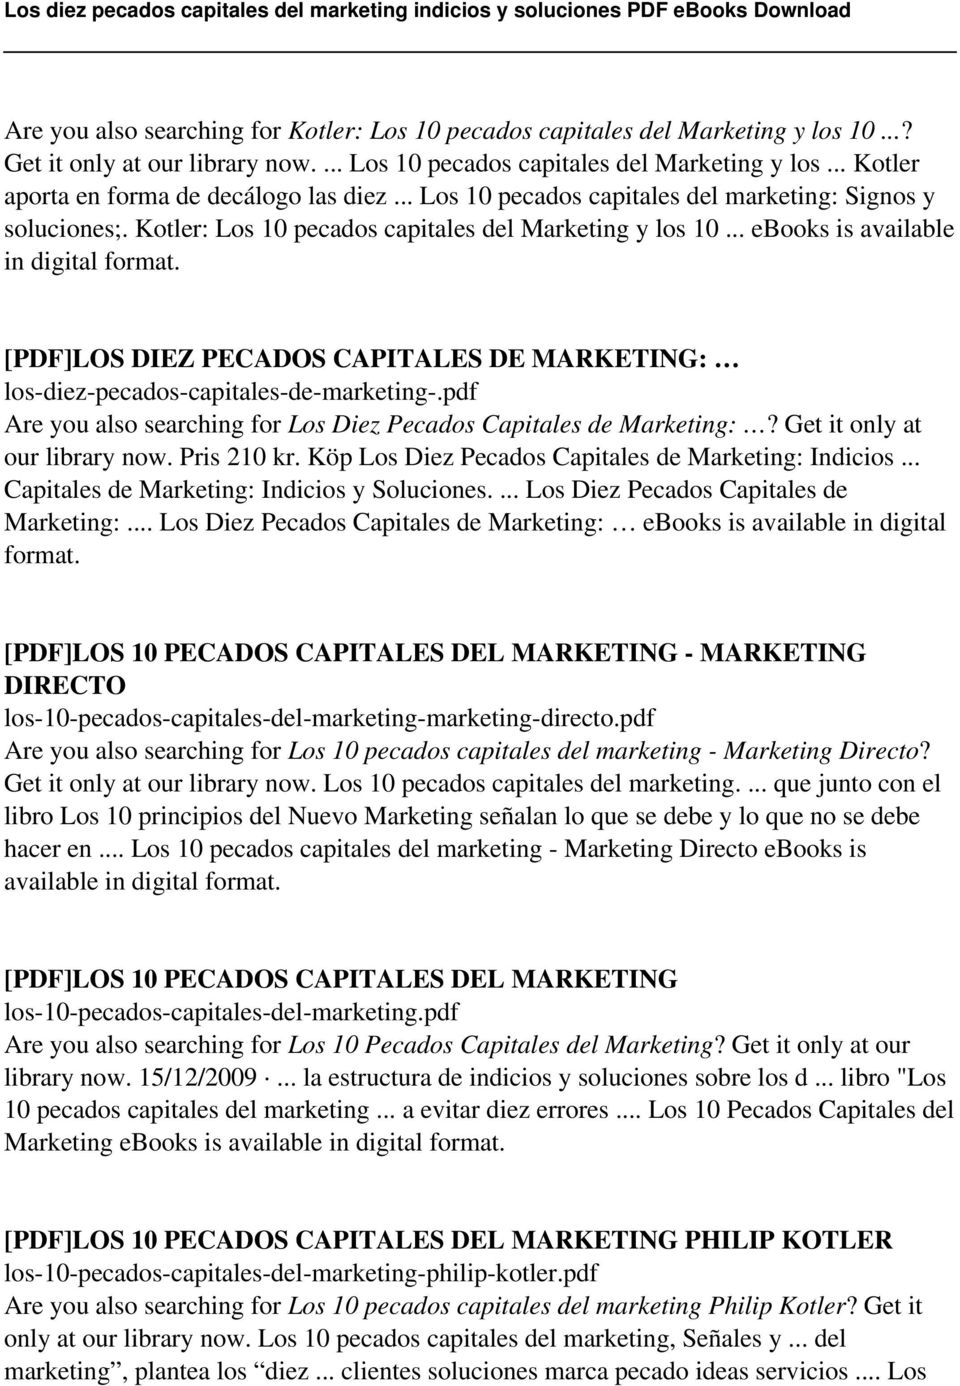 [PDF]LOS DIEZ PECADOS CAPITALES DE MARKETING: los-diez-pecados-capitales-de-marketing-.pdf Are you also searching for Los Diez Pecados Capitales de Marketing:? Get it only at our library now.